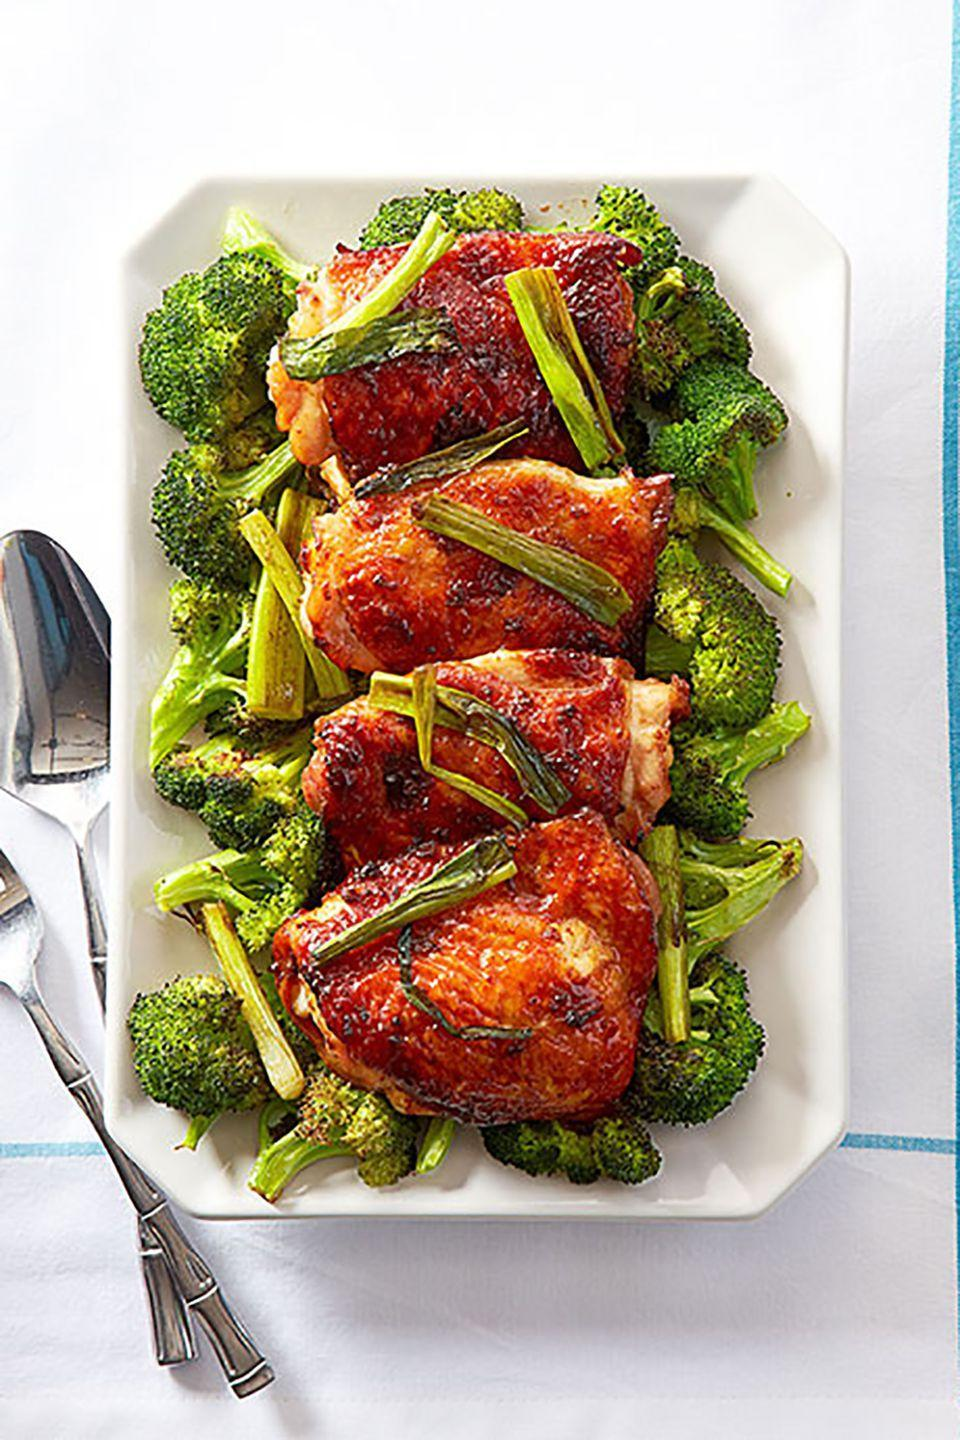 "<p>A glaze of soy and honey gives this dish its rich color and caramelized flavor.</p><p><strong><a href=""https://www.countryliving.com/food-drinks/recipes/a24567/mahogany-chicken-broccoli-recipe-ghk0315/"" rel=""nofollow noopener"" target=""_blank"" data-ylk=""slk:Get the recipe."" class=""link rapid-noclick-resp"">Get the recipe.</a></strong><br></p><p><a class=""link rapid-noclick-resp"" href=""https://www.amazon.com/dp/B0026RHI3M?tag=syn-yahoo-20&ascsubtag=%5Bartid%7C10050.g.680%5Bsrc%7Cyahoo-us"" rel=""nofollow noopener"" target=""_blank"" data-ylk=""slk:SHOP BAKING SHEETS"">SHOP BAKING SHEETS</a> </p>"